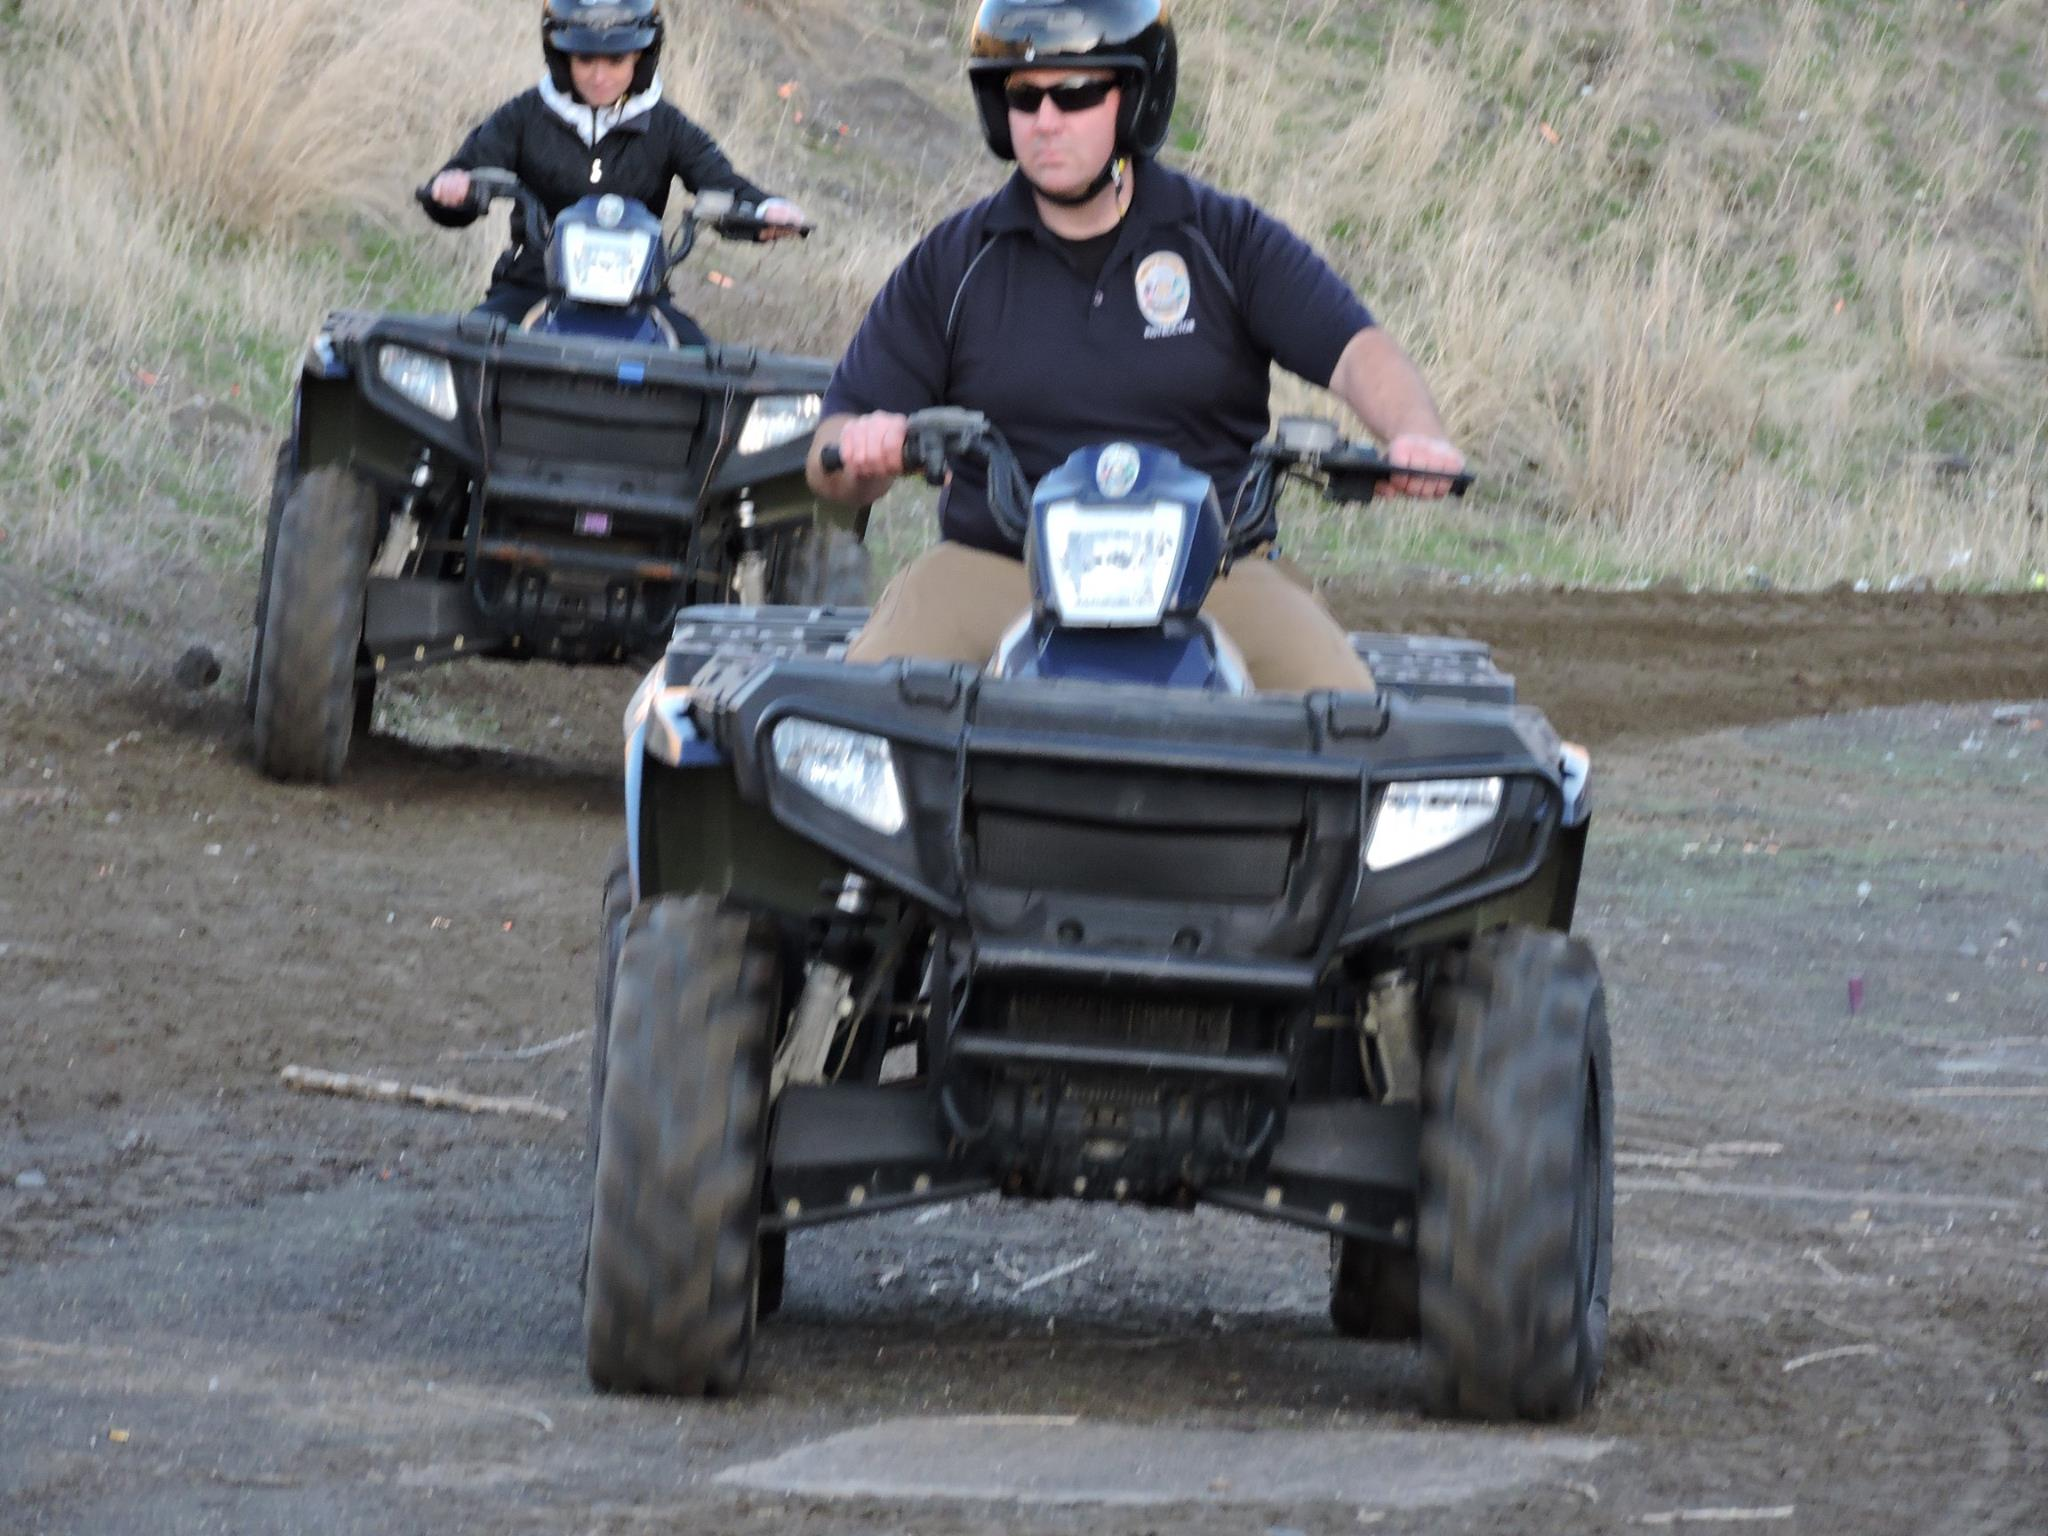 Pasco police get a new set of wheels to better protect public events